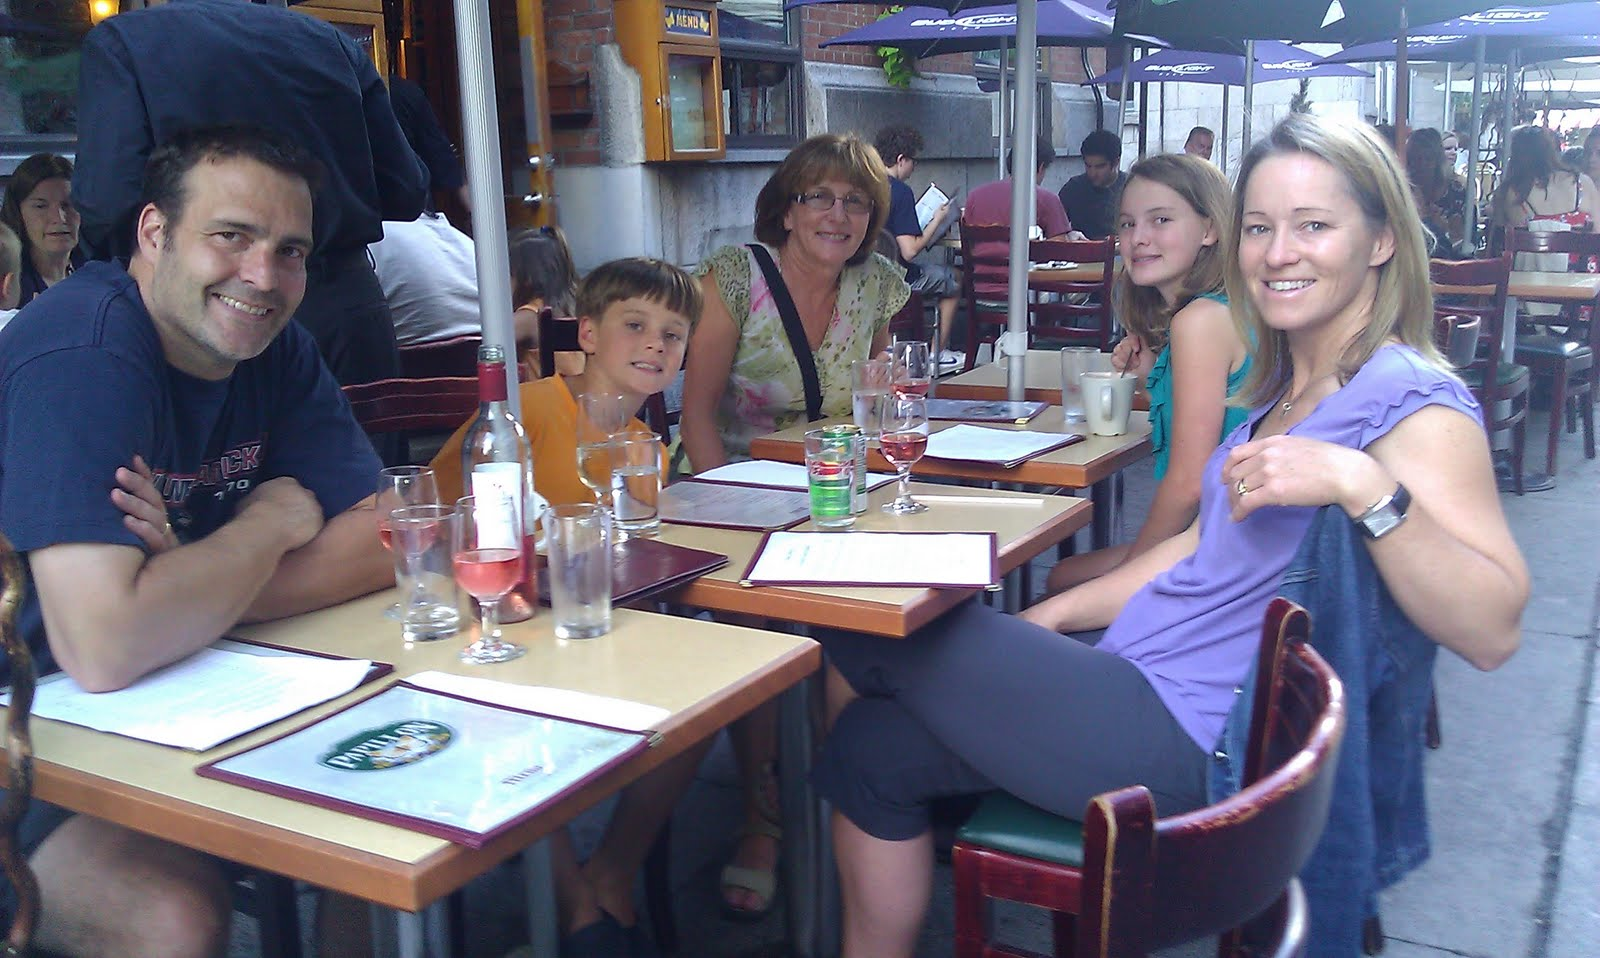 Family at an outdoor restaurant